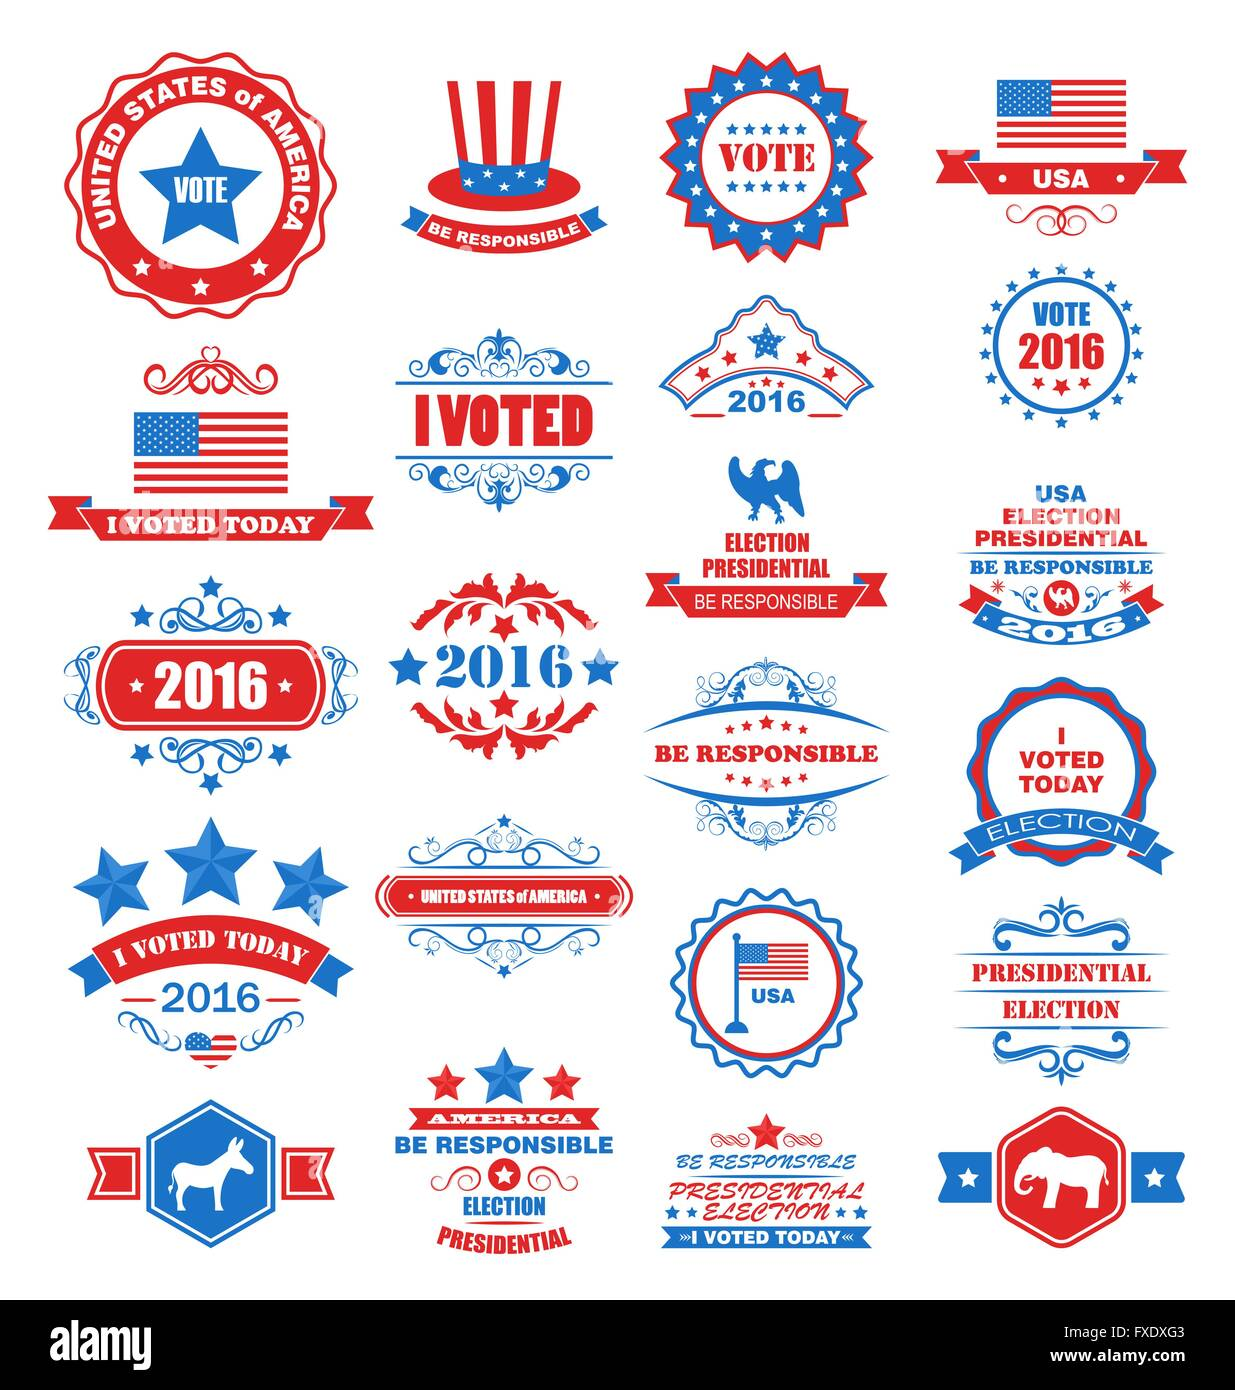 Objects And Symbols For Vote Of Usa Stock Vector Art Illustration